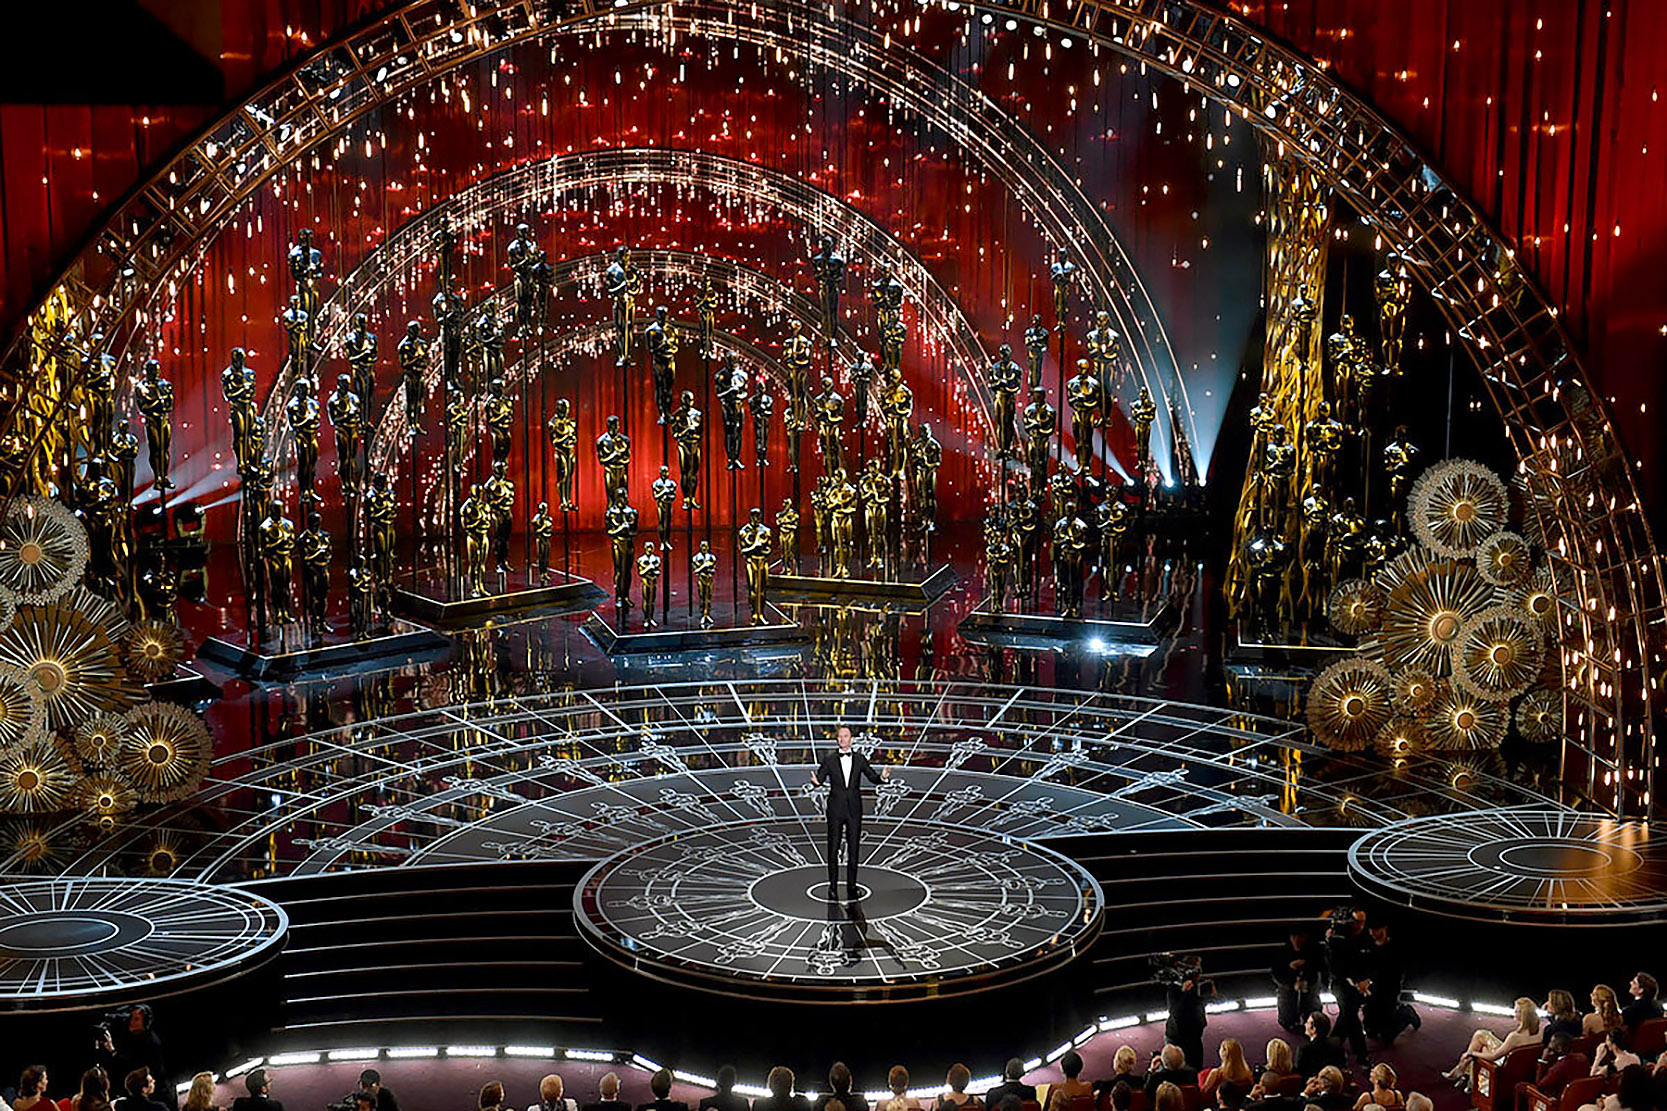 Oscars 2012 additionally Seven Decades Of Oscar Fashion besides 77543208 in addition Previous Miss World Priyanka Chopra To Present At 74th Golden Globes Awards 2017 moreover Matt Damon And Ben Affleck Strong Contenders To Host Oscars 2017. on oscar awards ceremony 2017